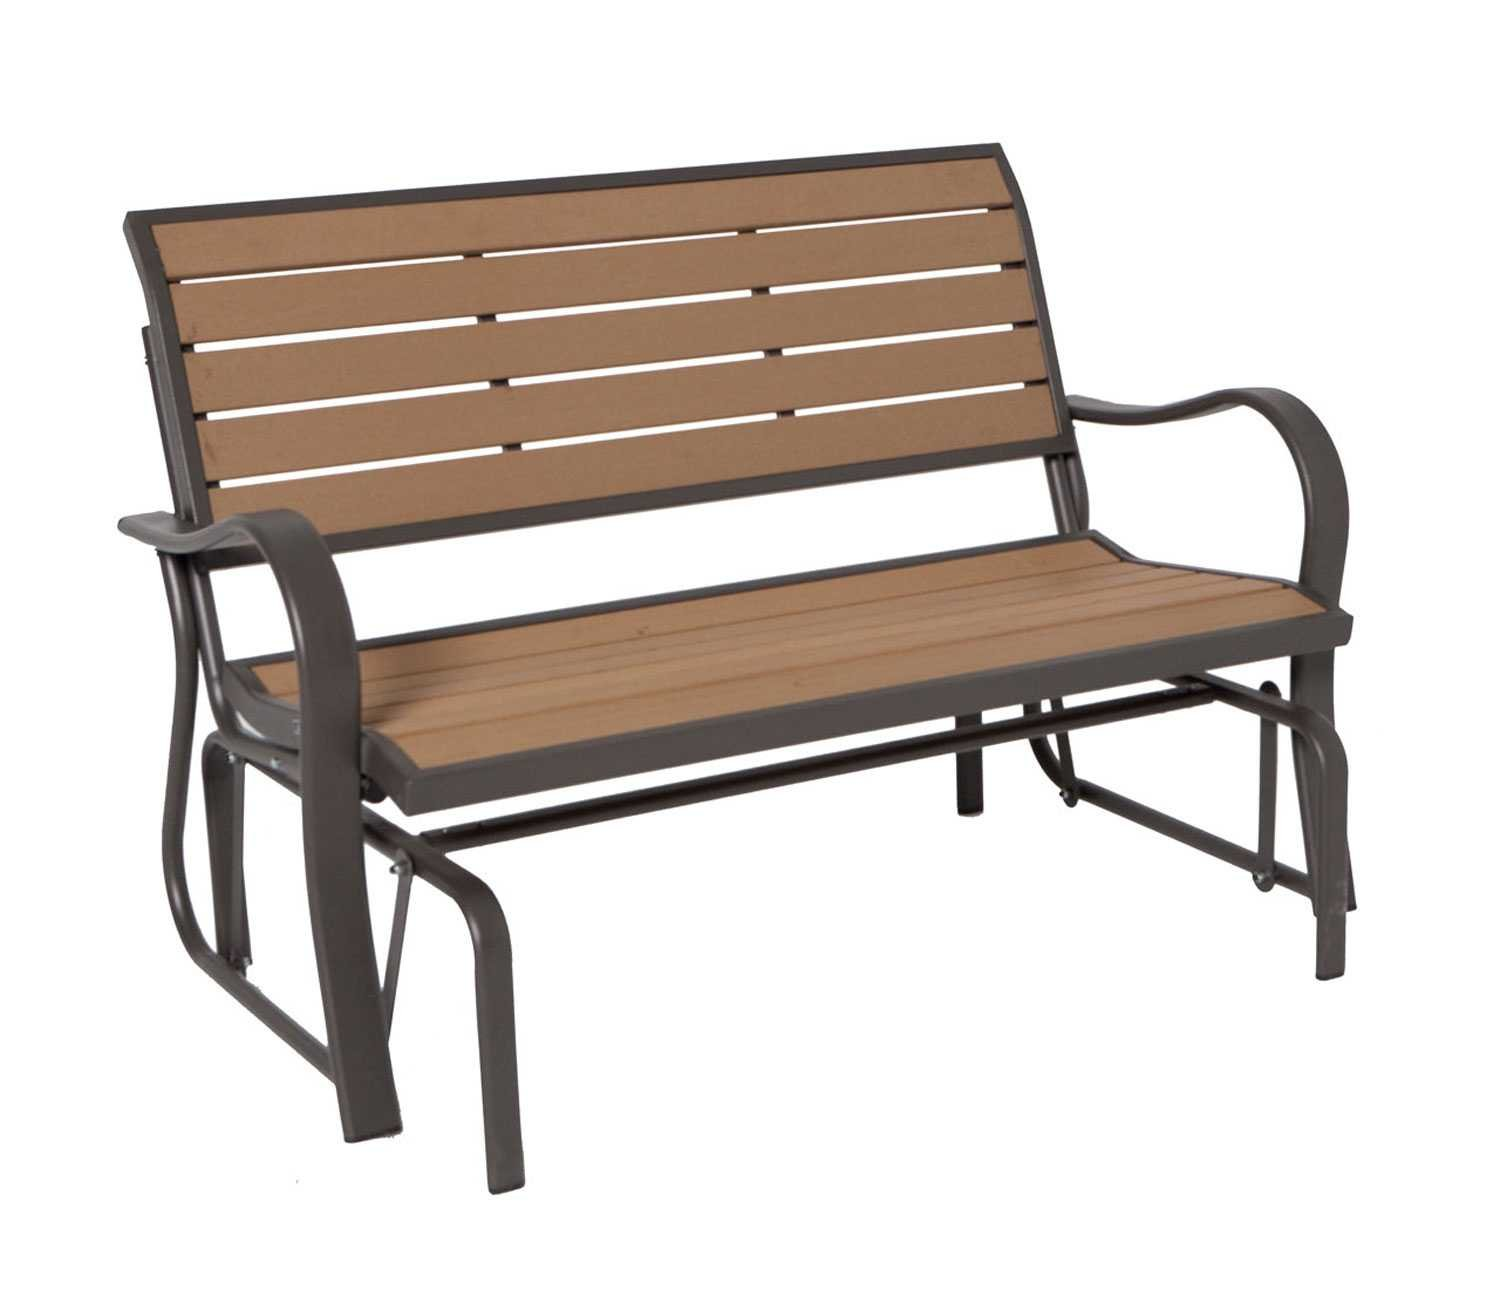 Benches garden furniture home decoration club Furniture benches